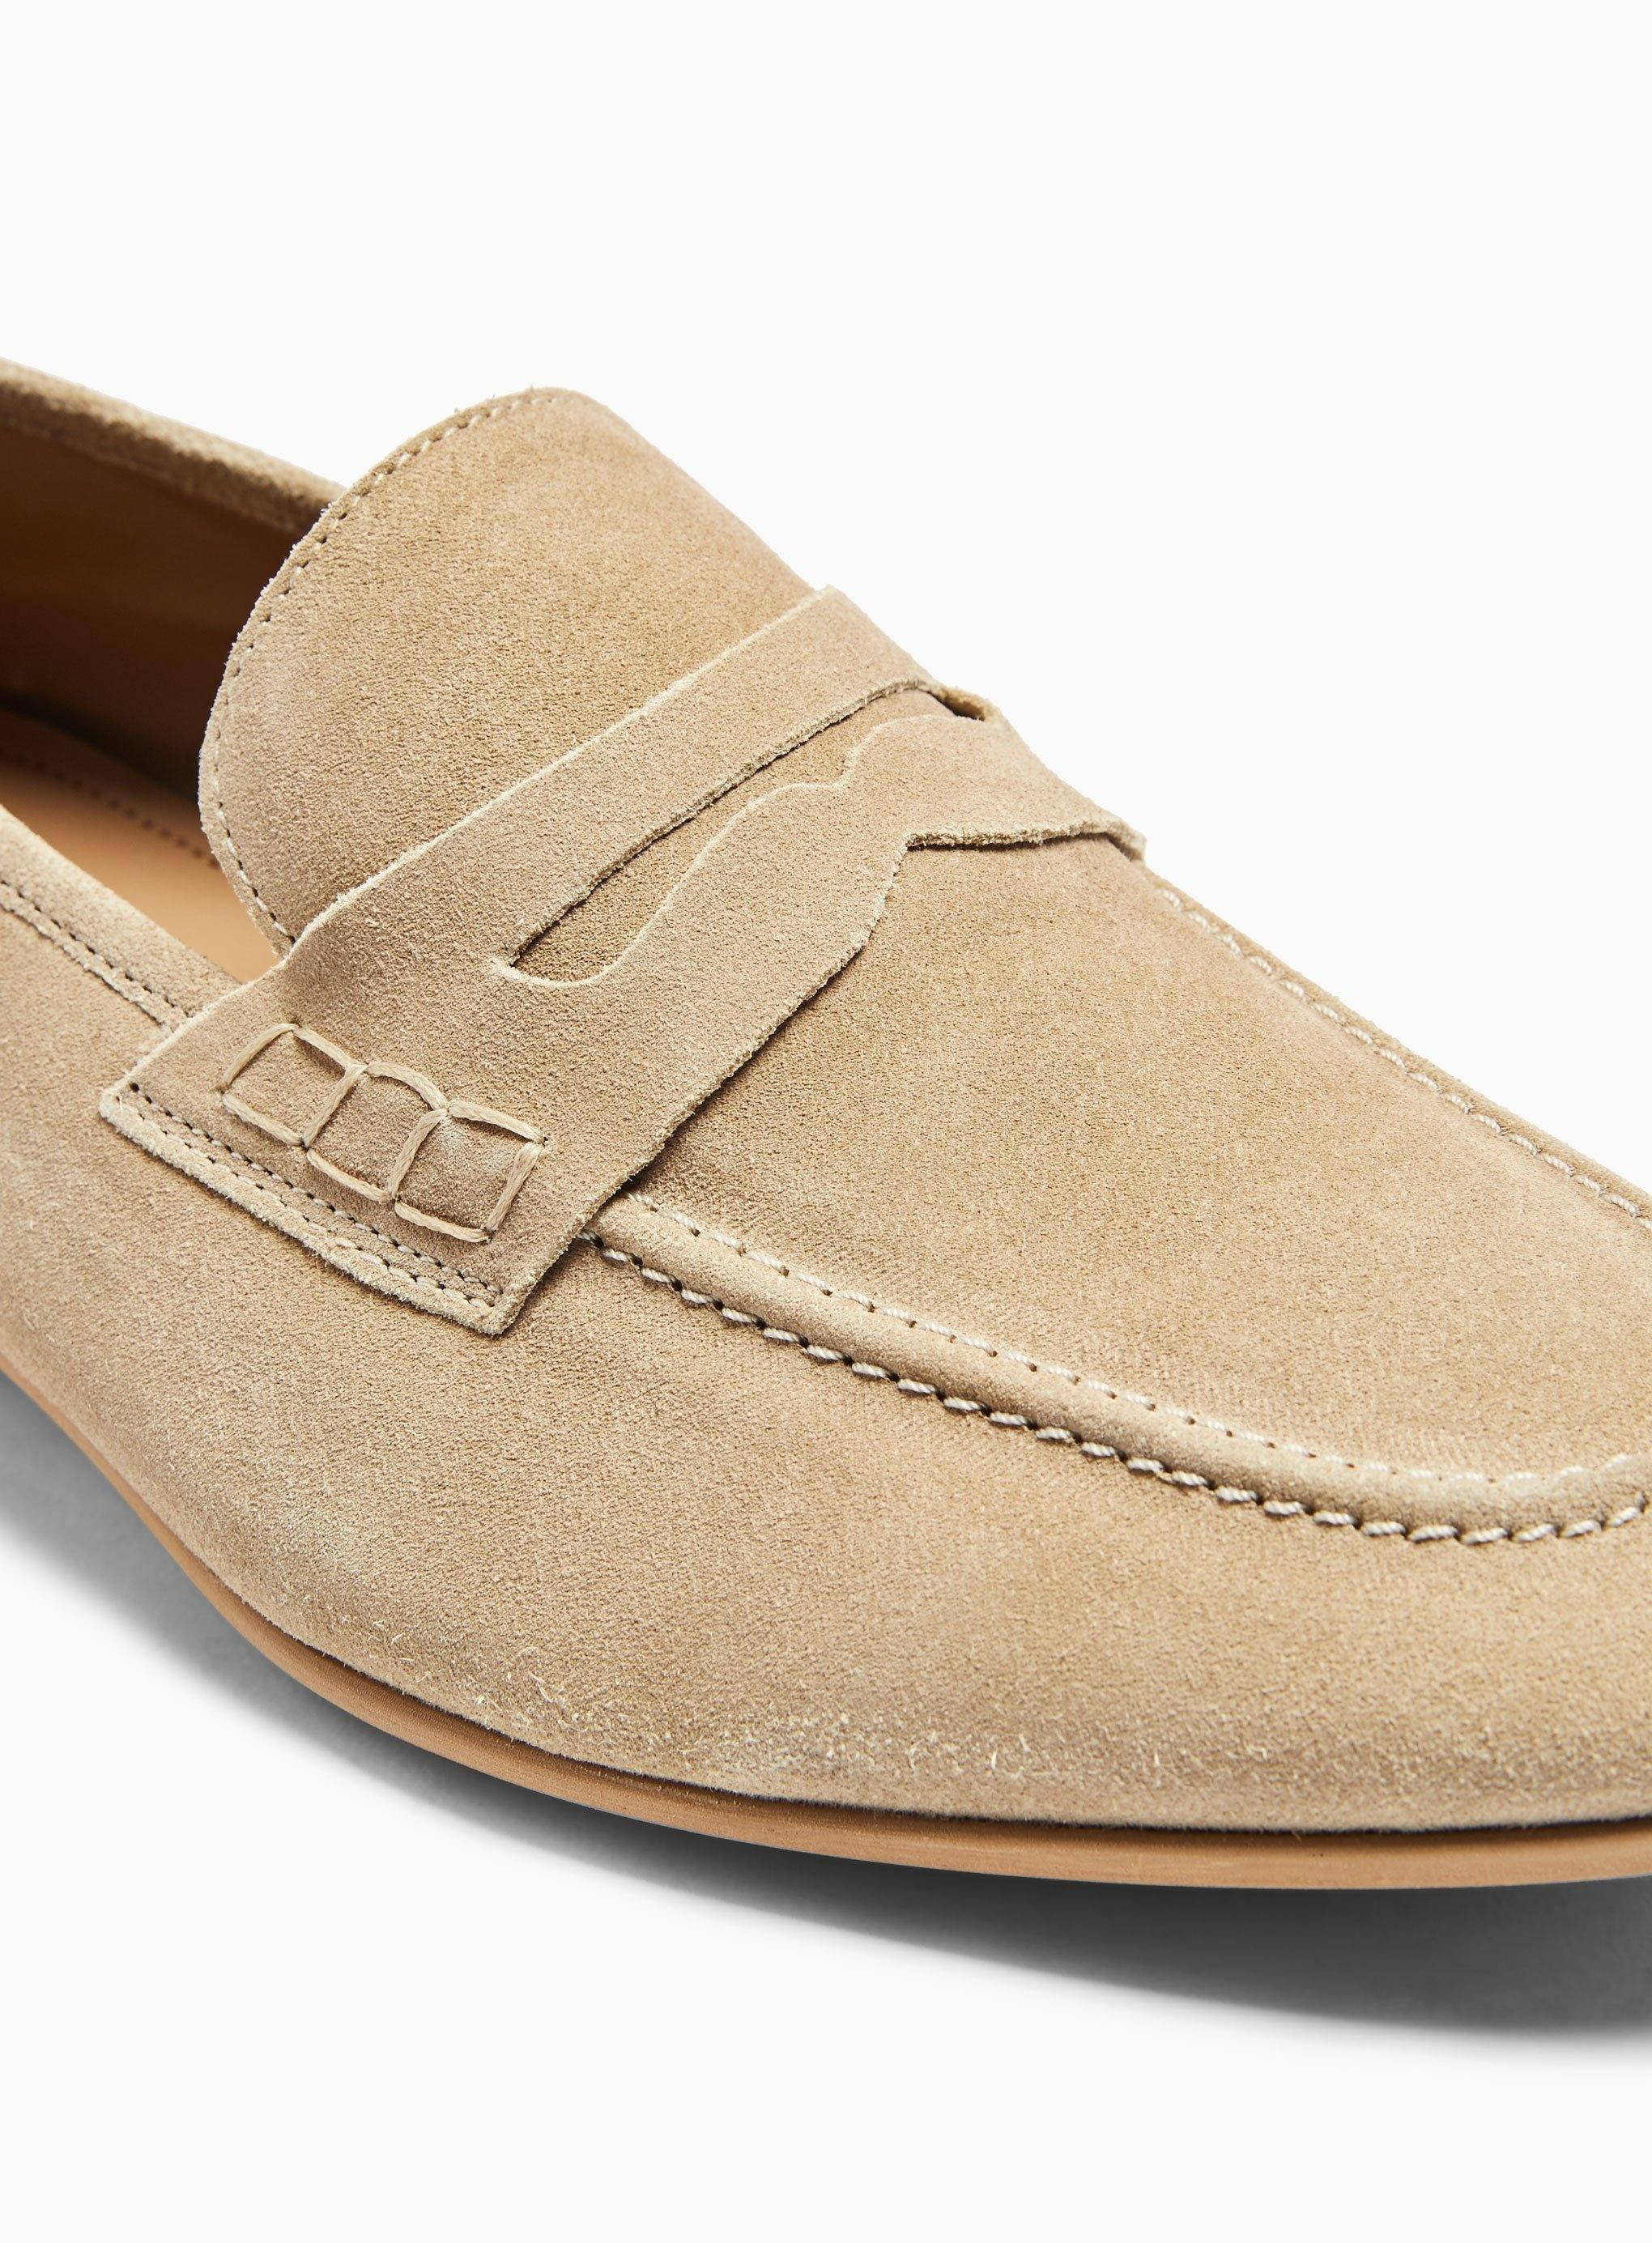 TOPMAN Suede Colburn Loafer in Stone